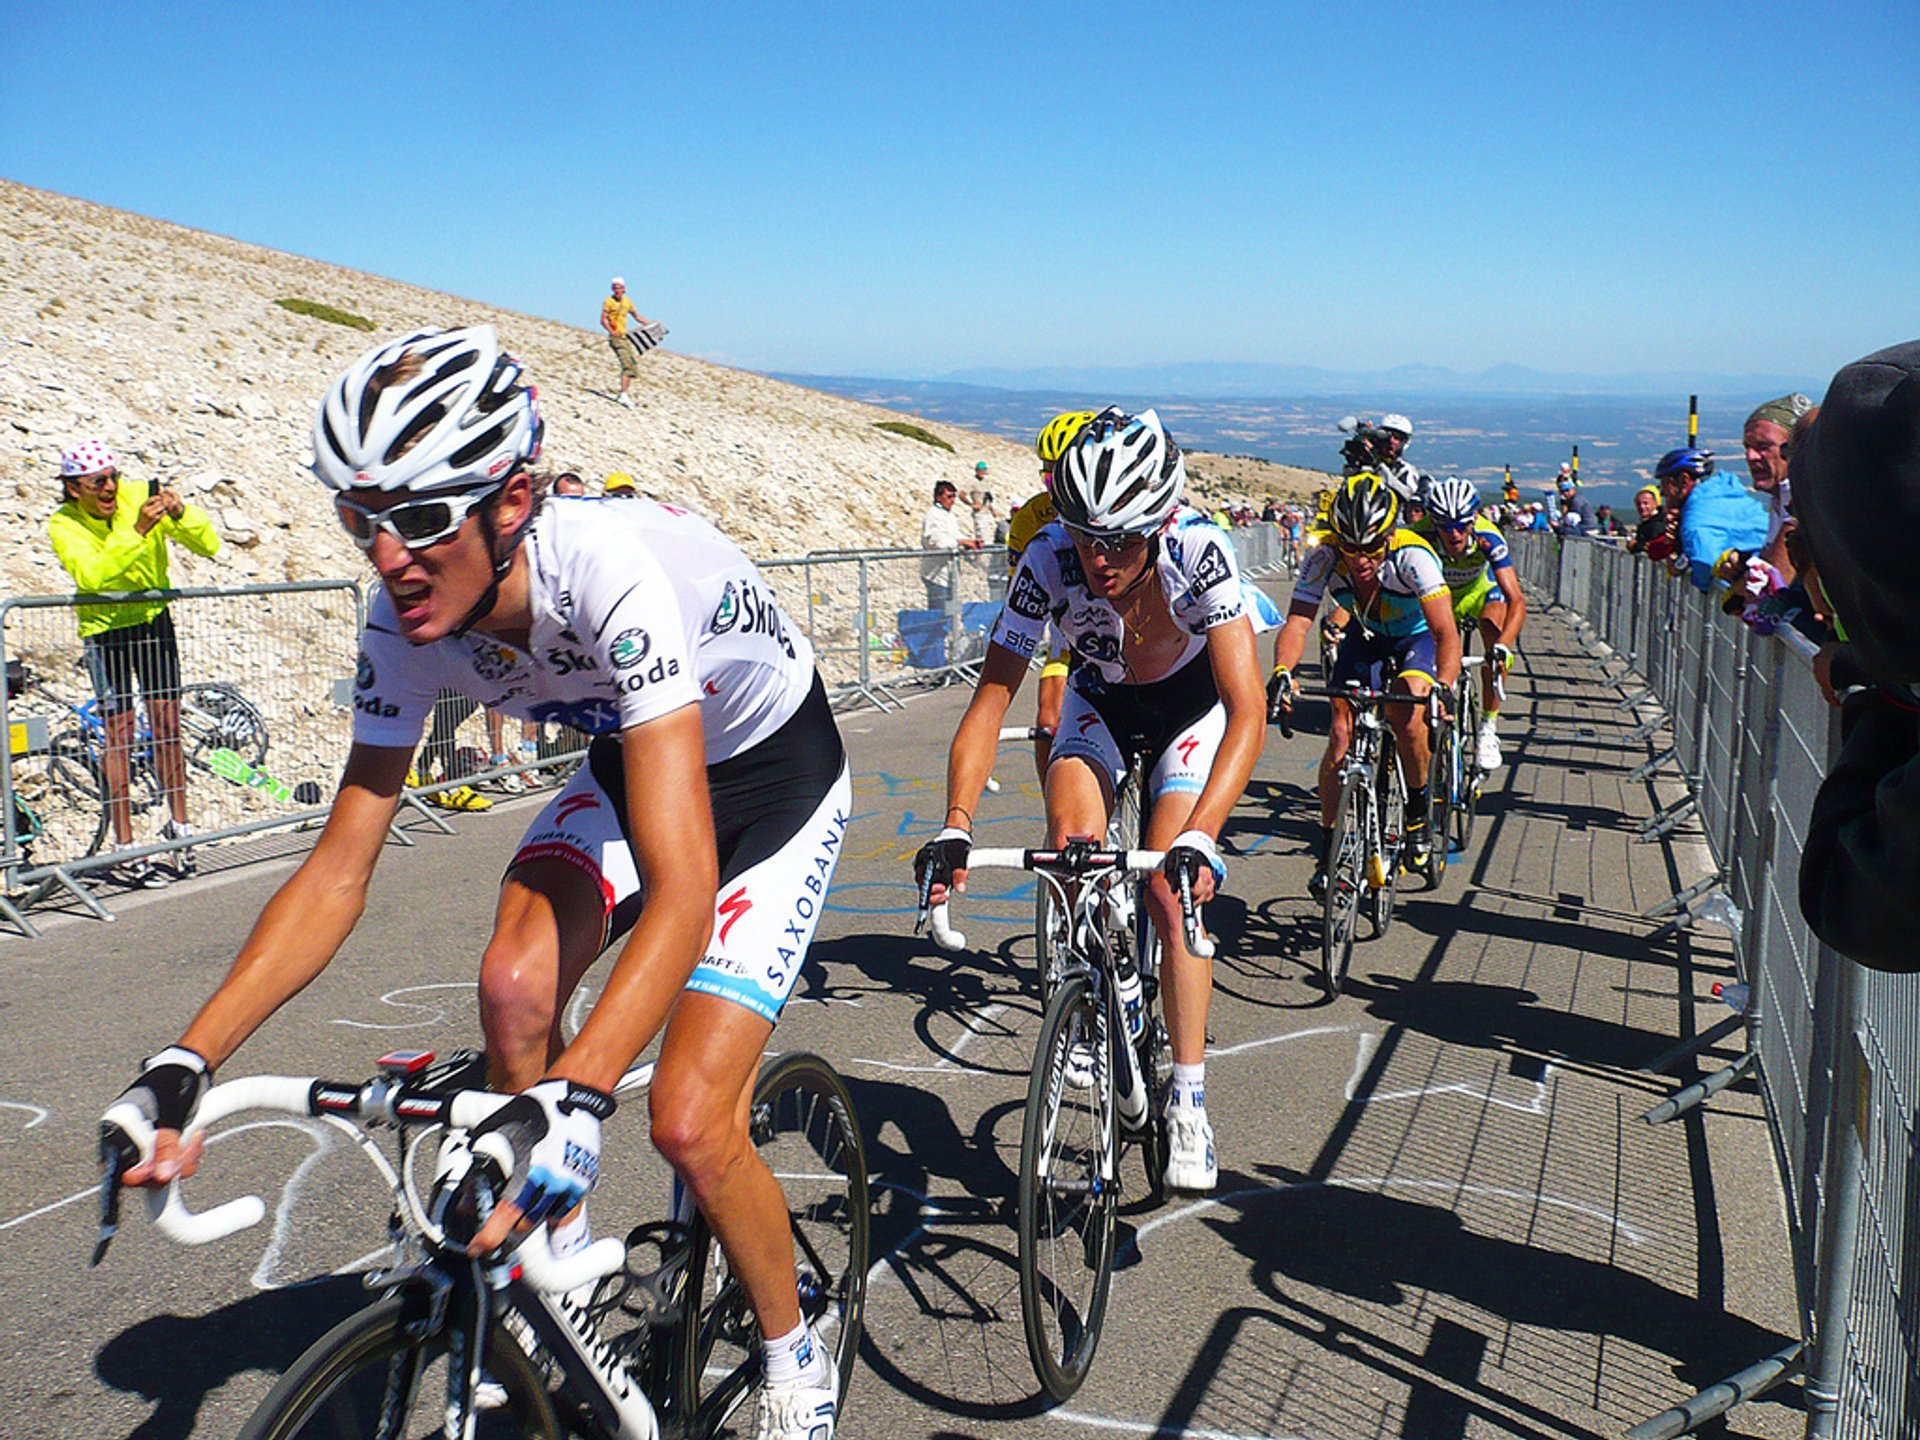 Tour De France in Provence & French Riviera - Best Season 2020